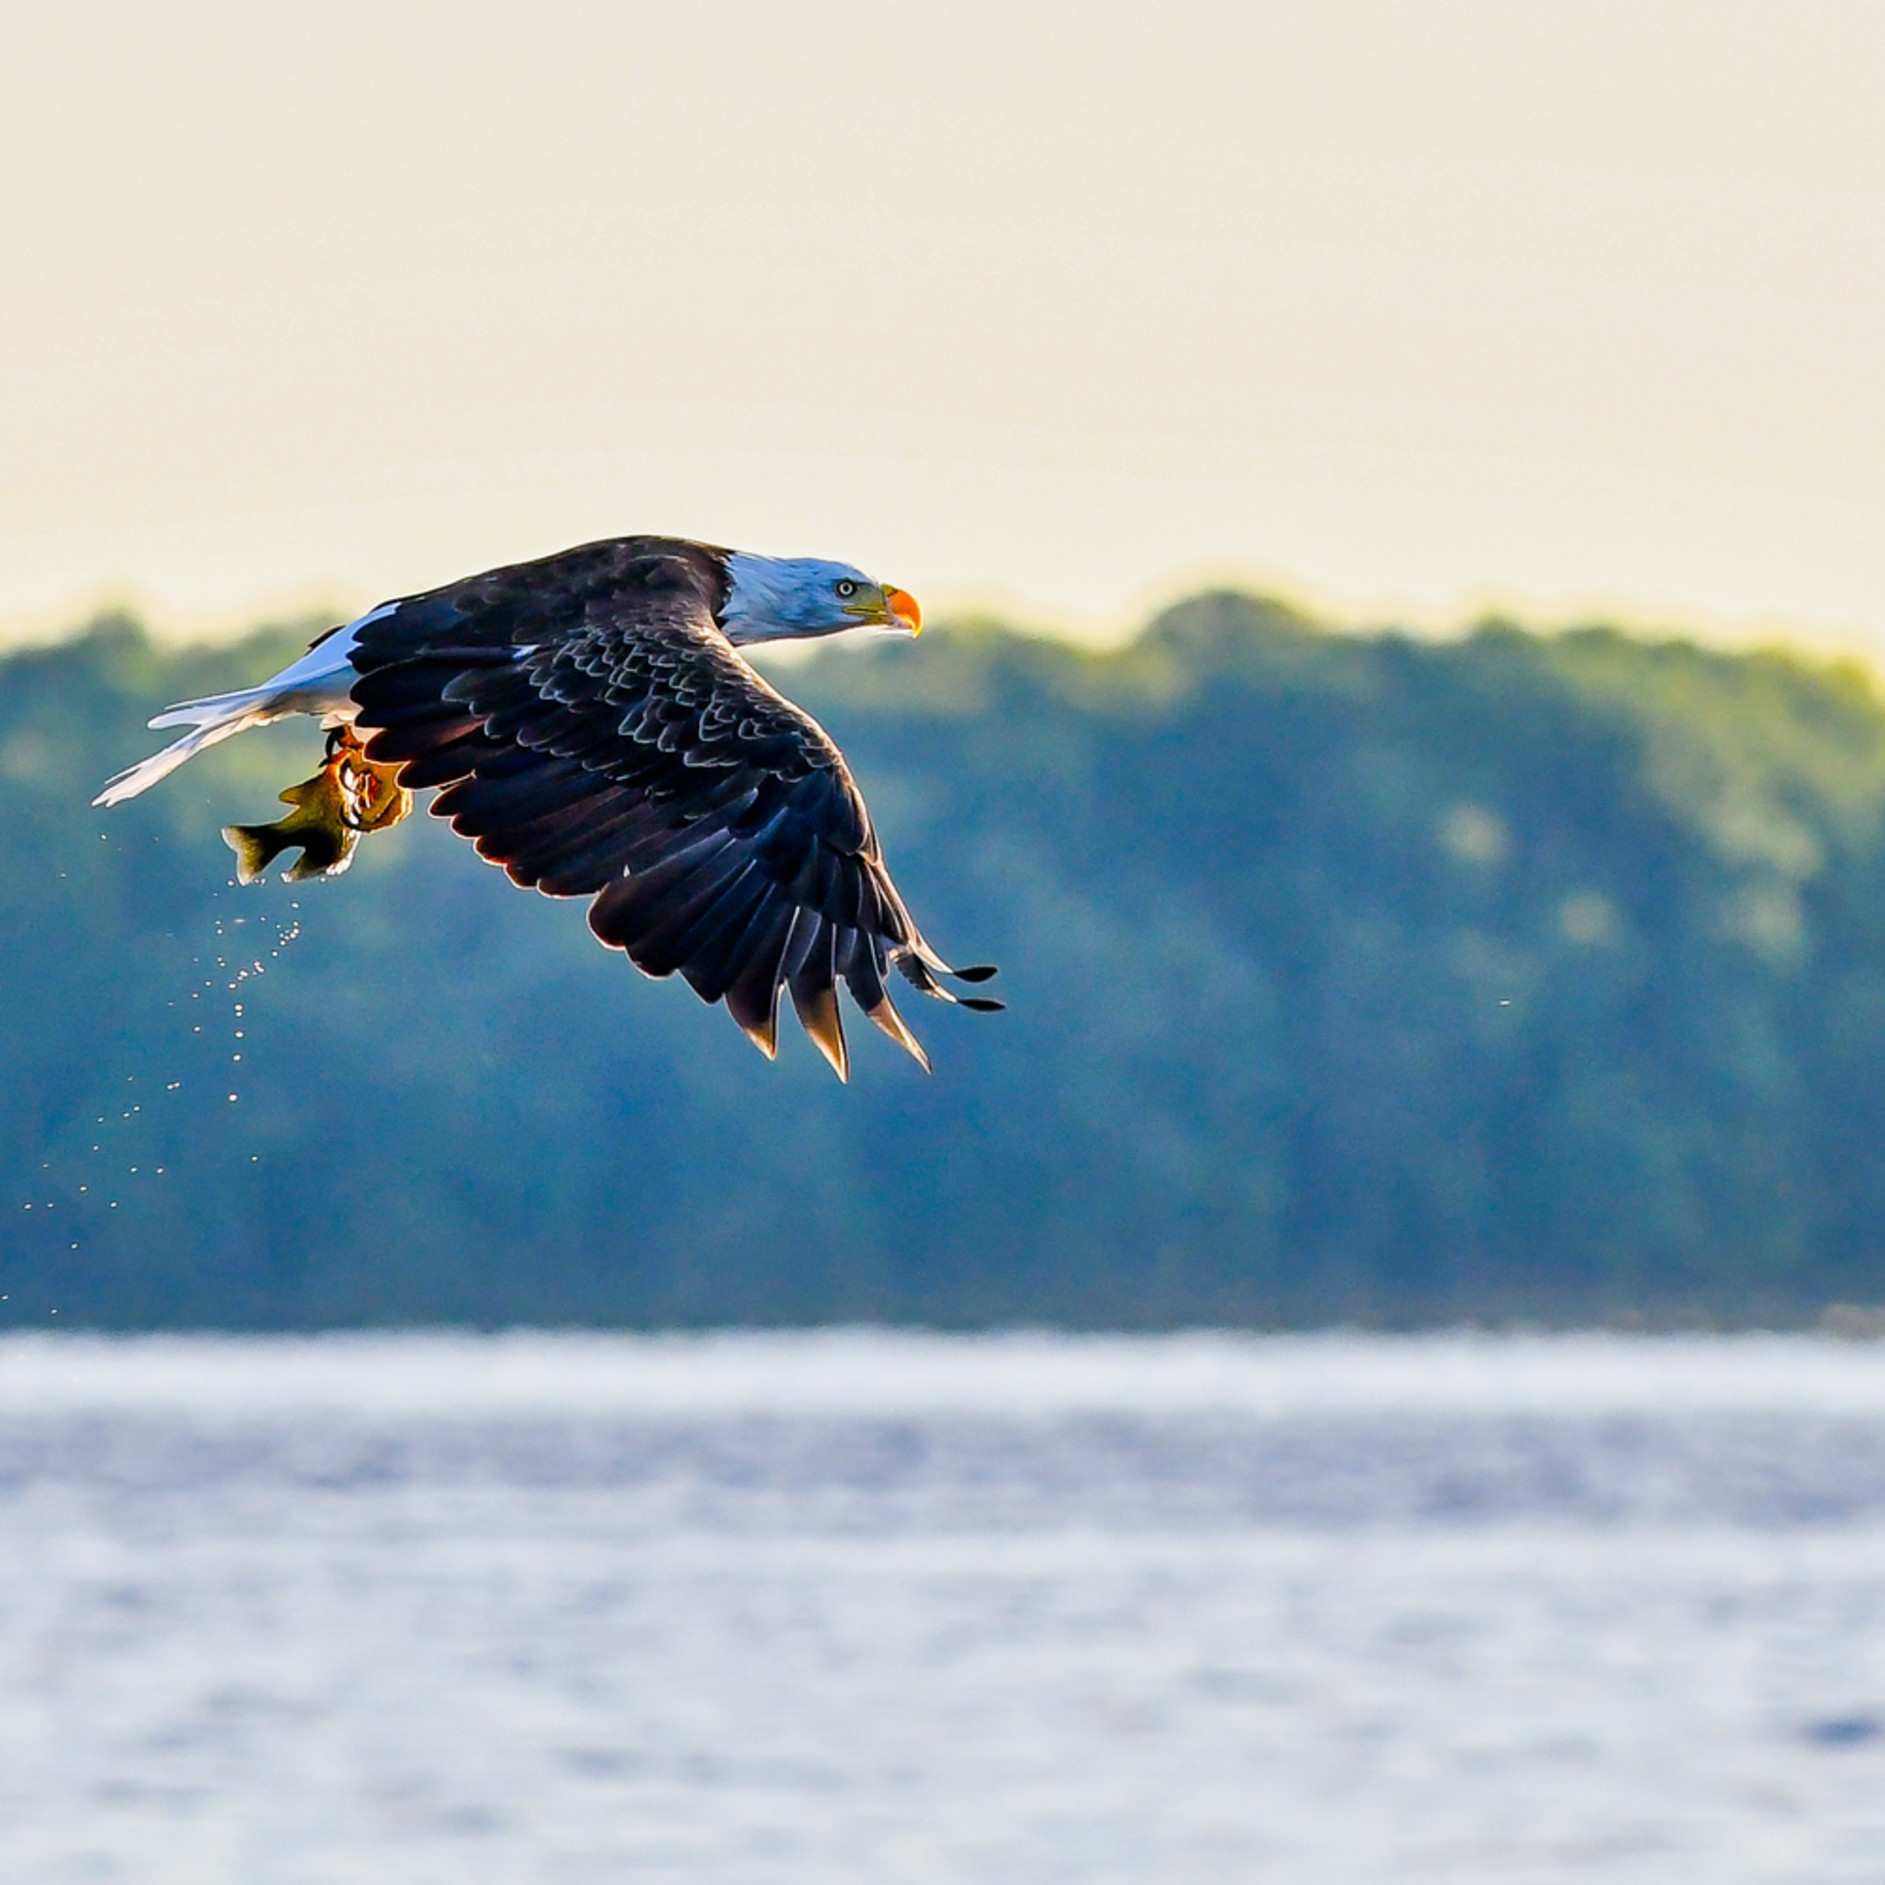 Andy crawford photography eagle catching fish 8 xuewuz